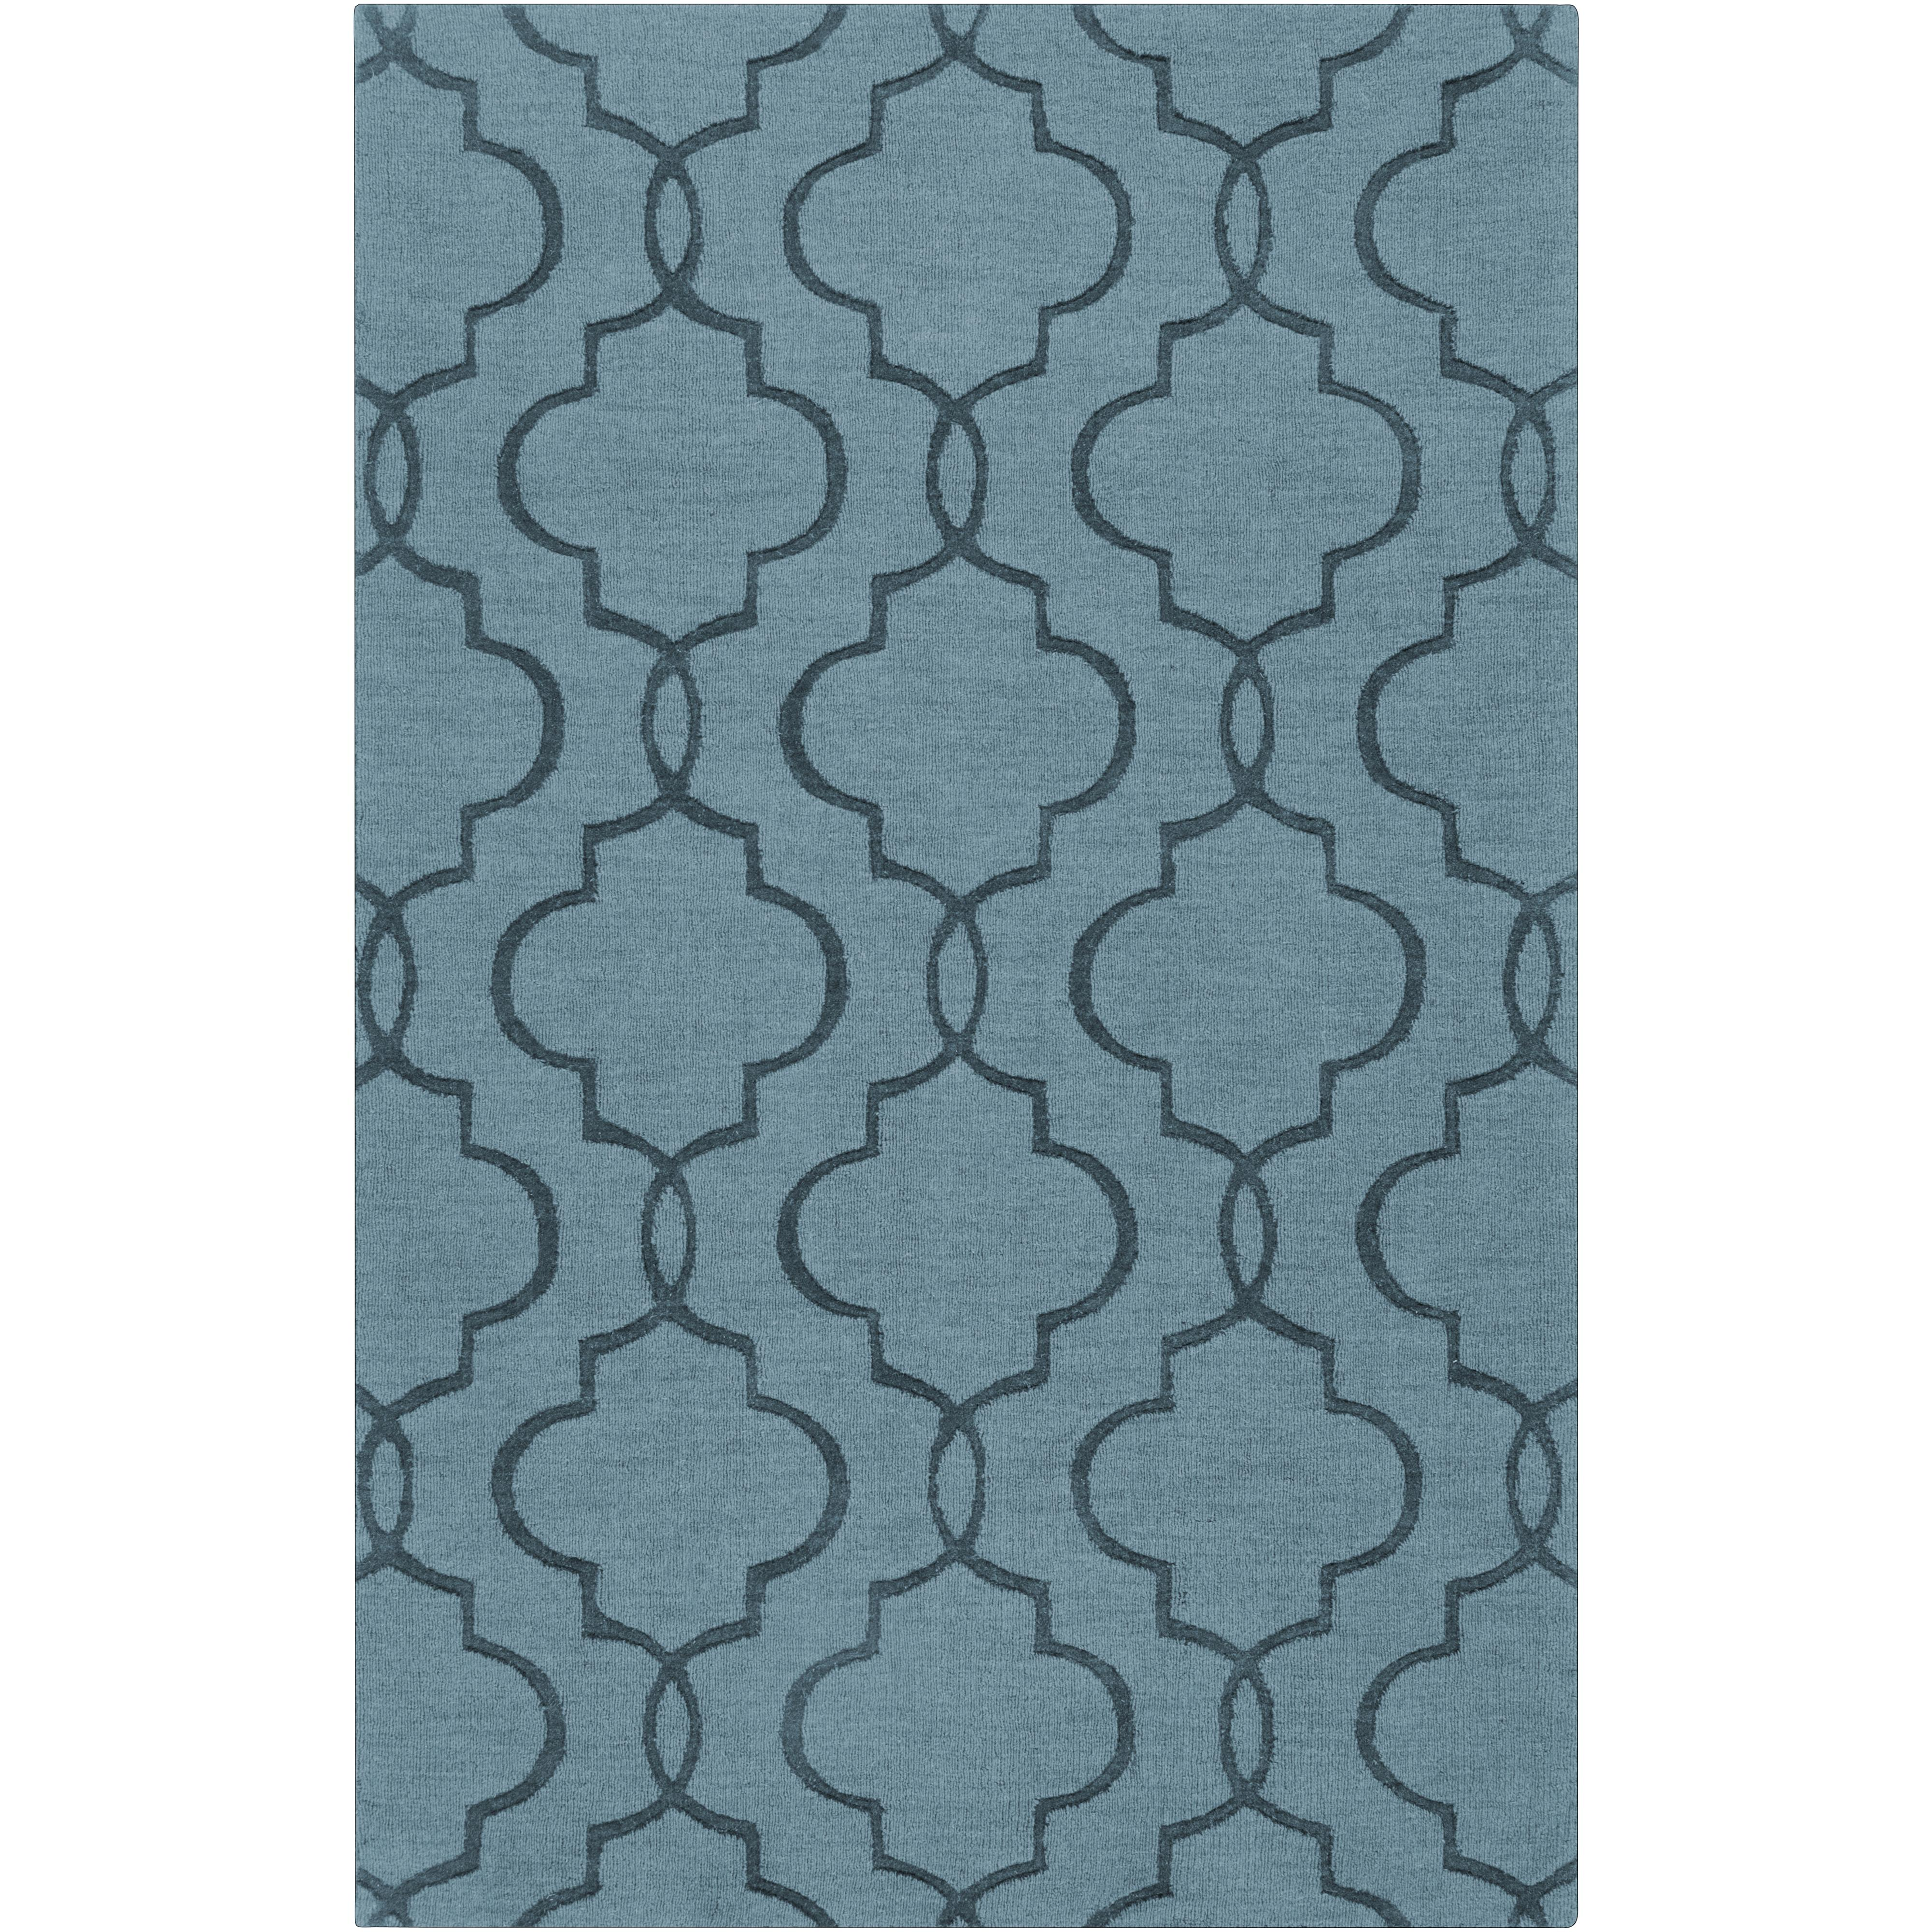 "Surya Rugs Mystique 3'3"" x 5'3"" - Item Number: M5181-3353"